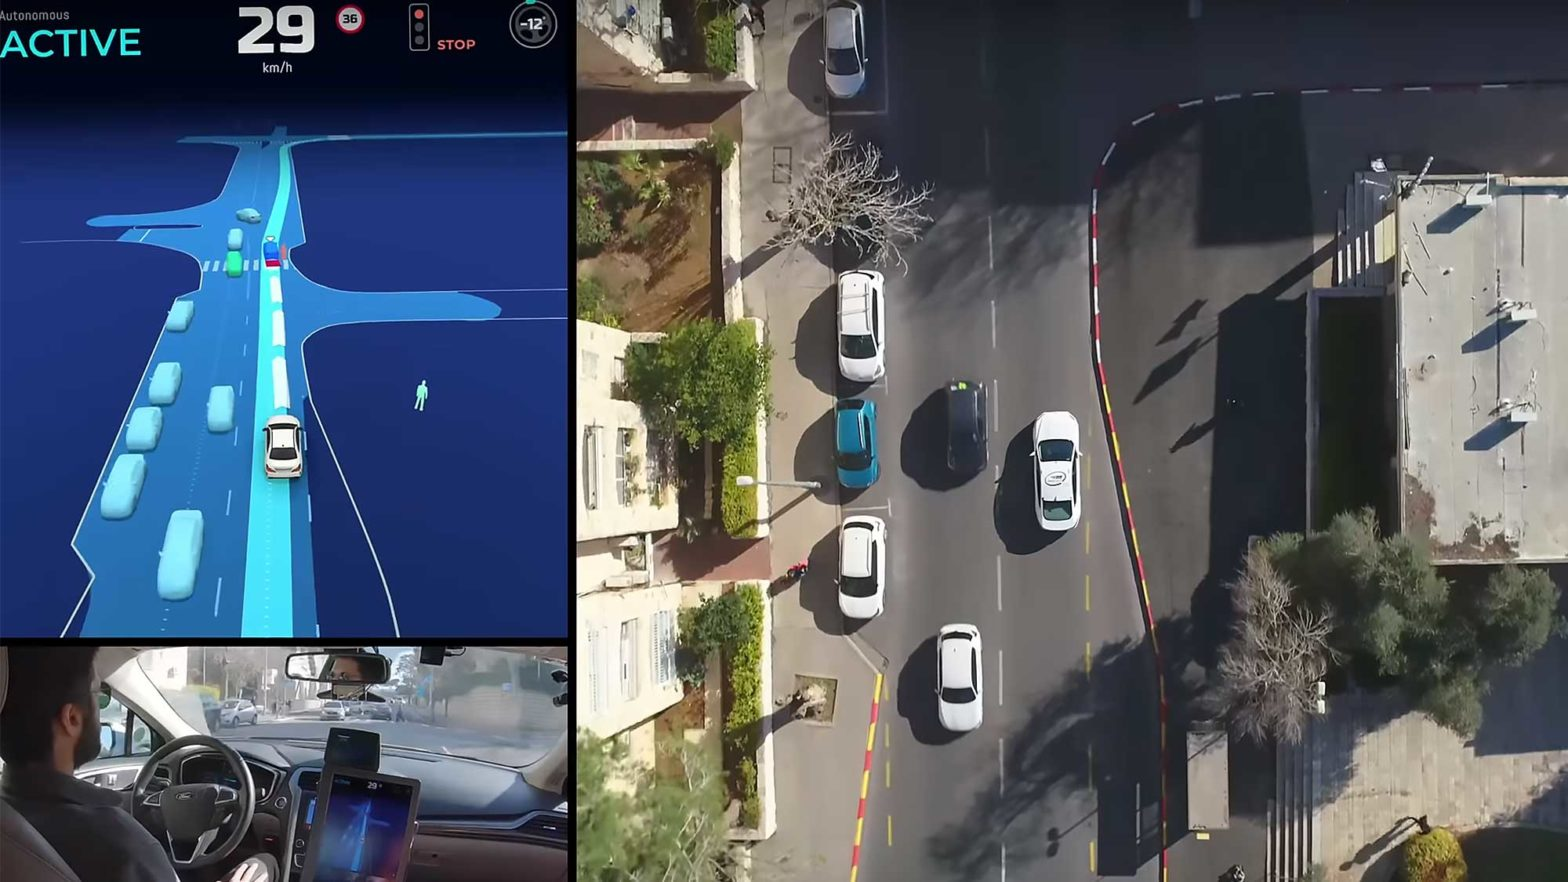 Mobileye Camera-driven Autonomous Vehicle